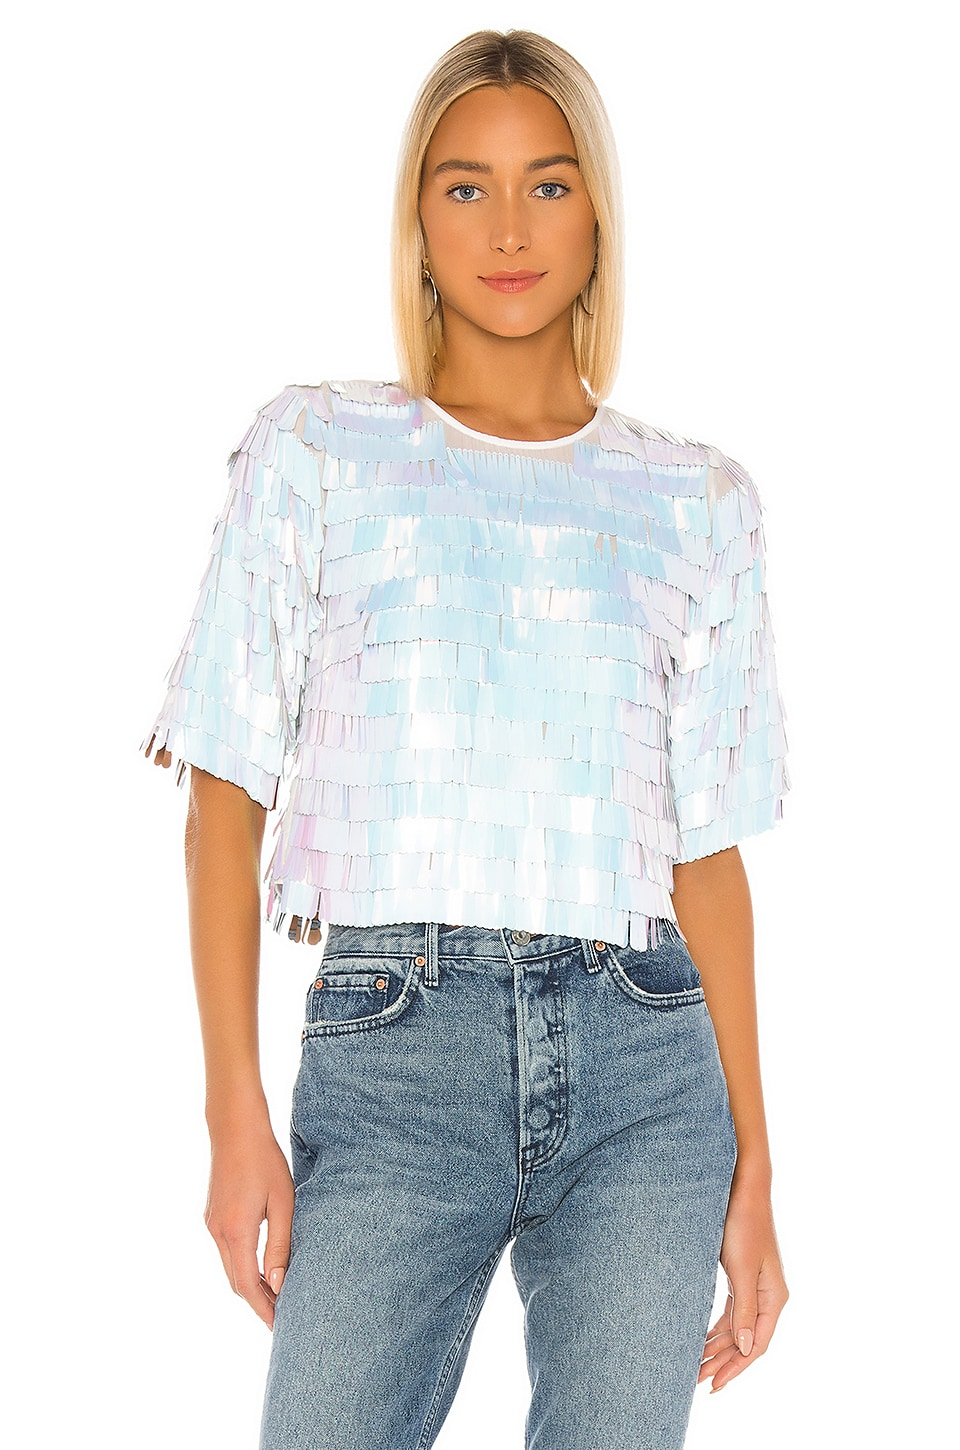 House of Harlow 1960 x REVOLVE Marcel Top in White